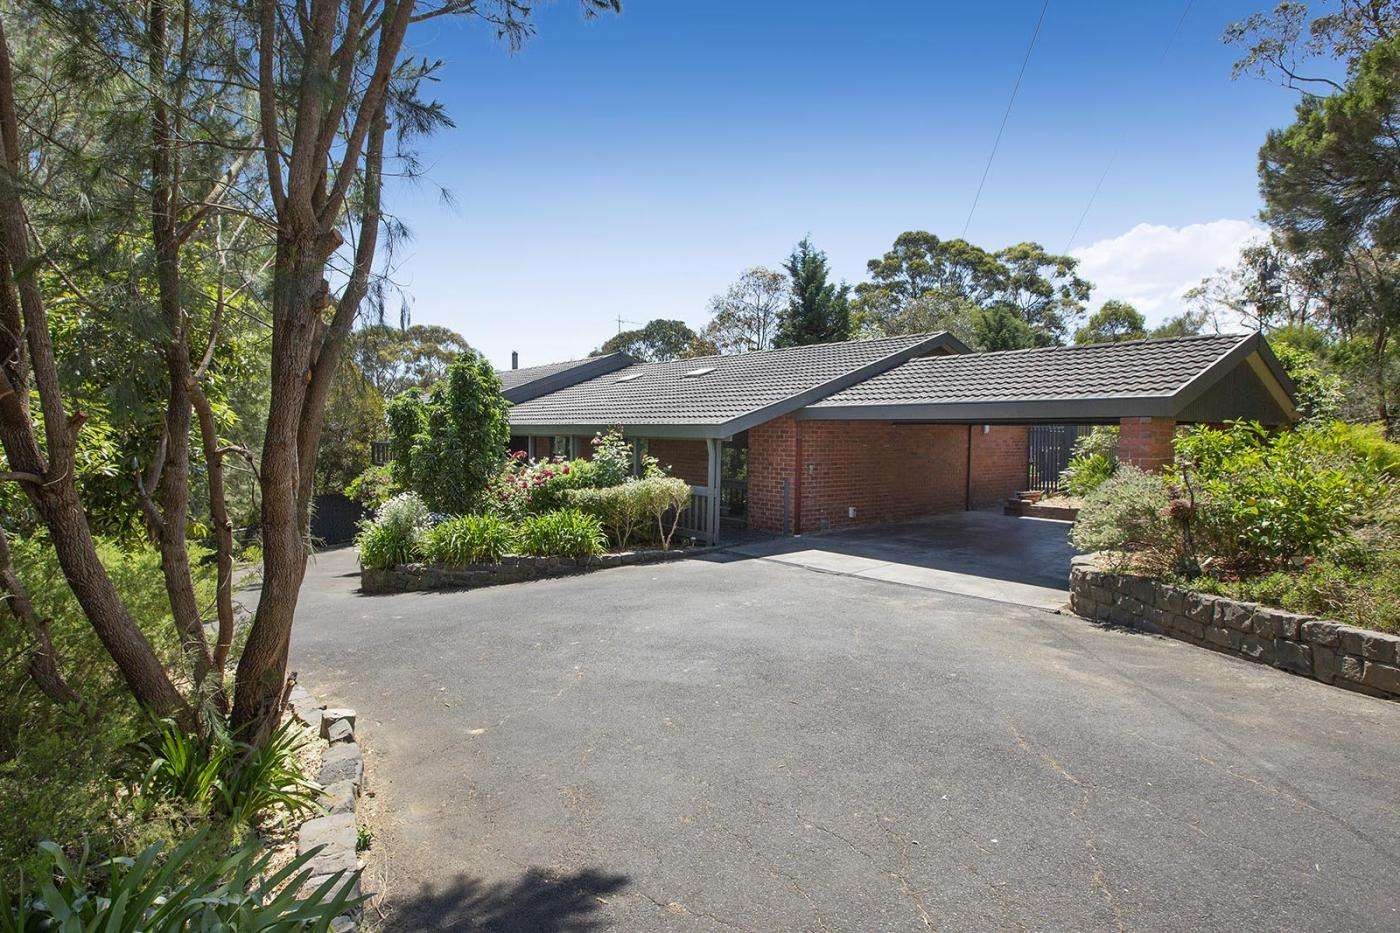 Main view of Homely house listing, 4 Livingstone Court, Mount Eliza, VIC 3930